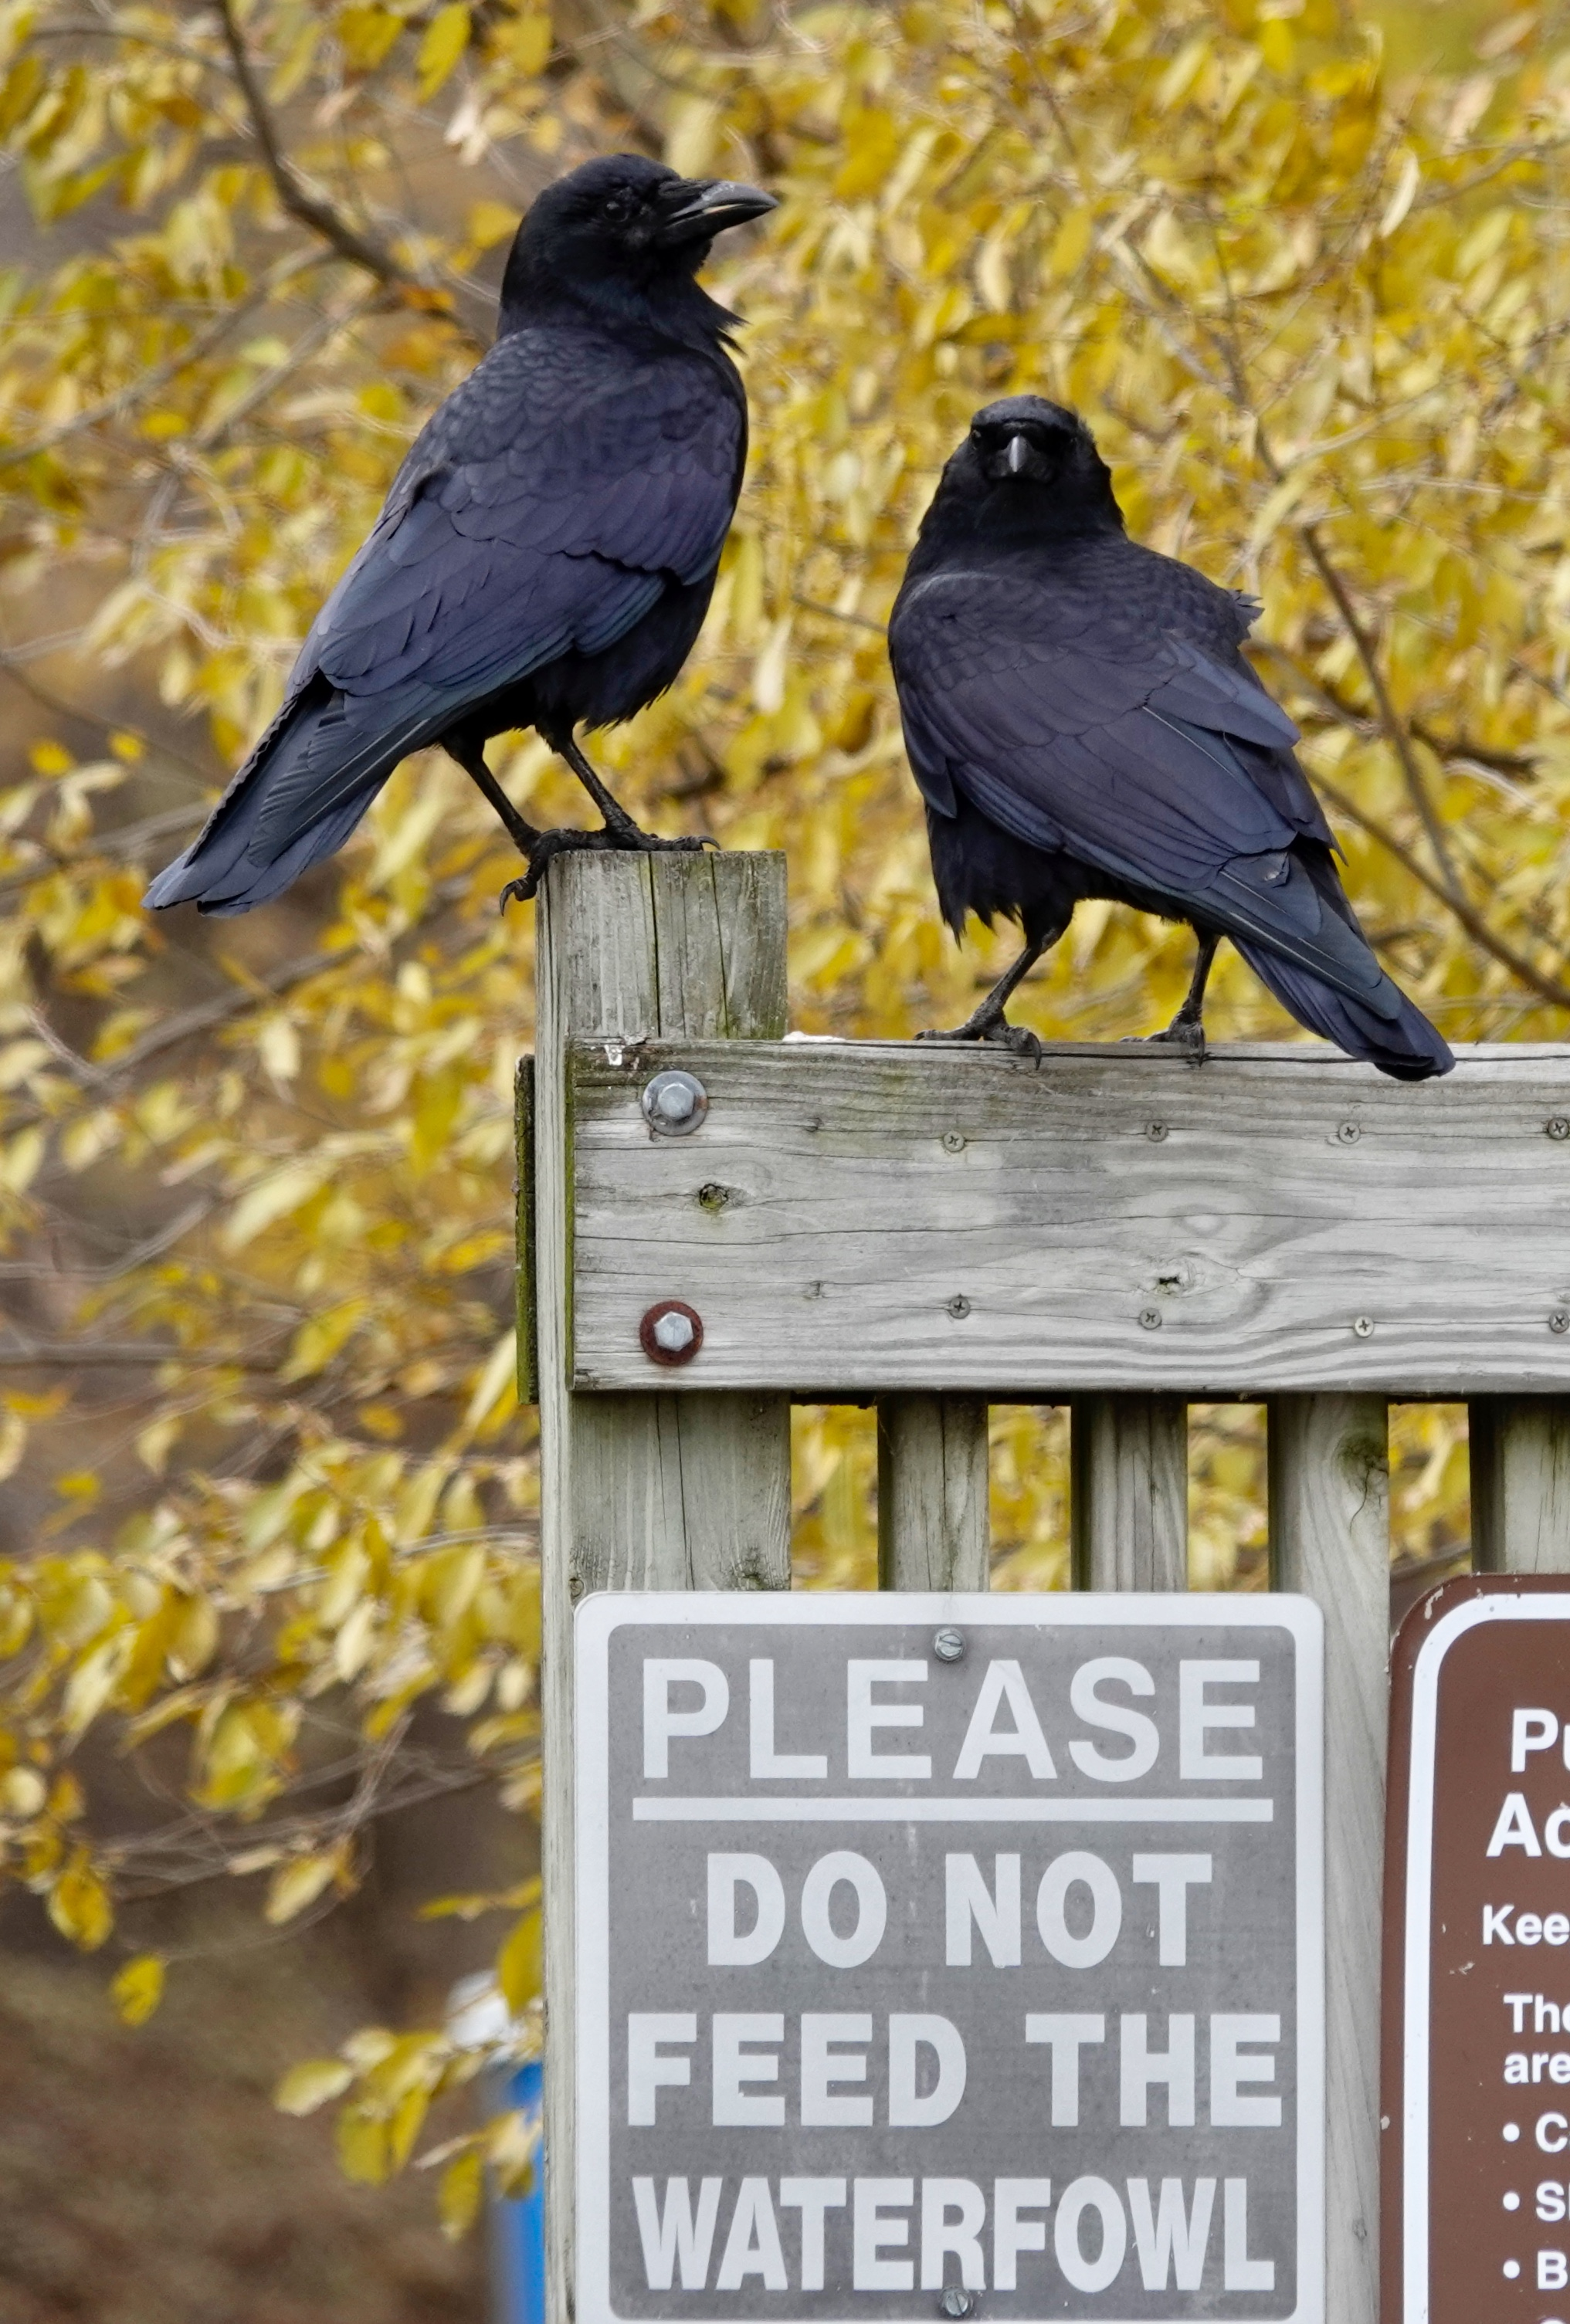 Crows are happy they aren't waterfowl.